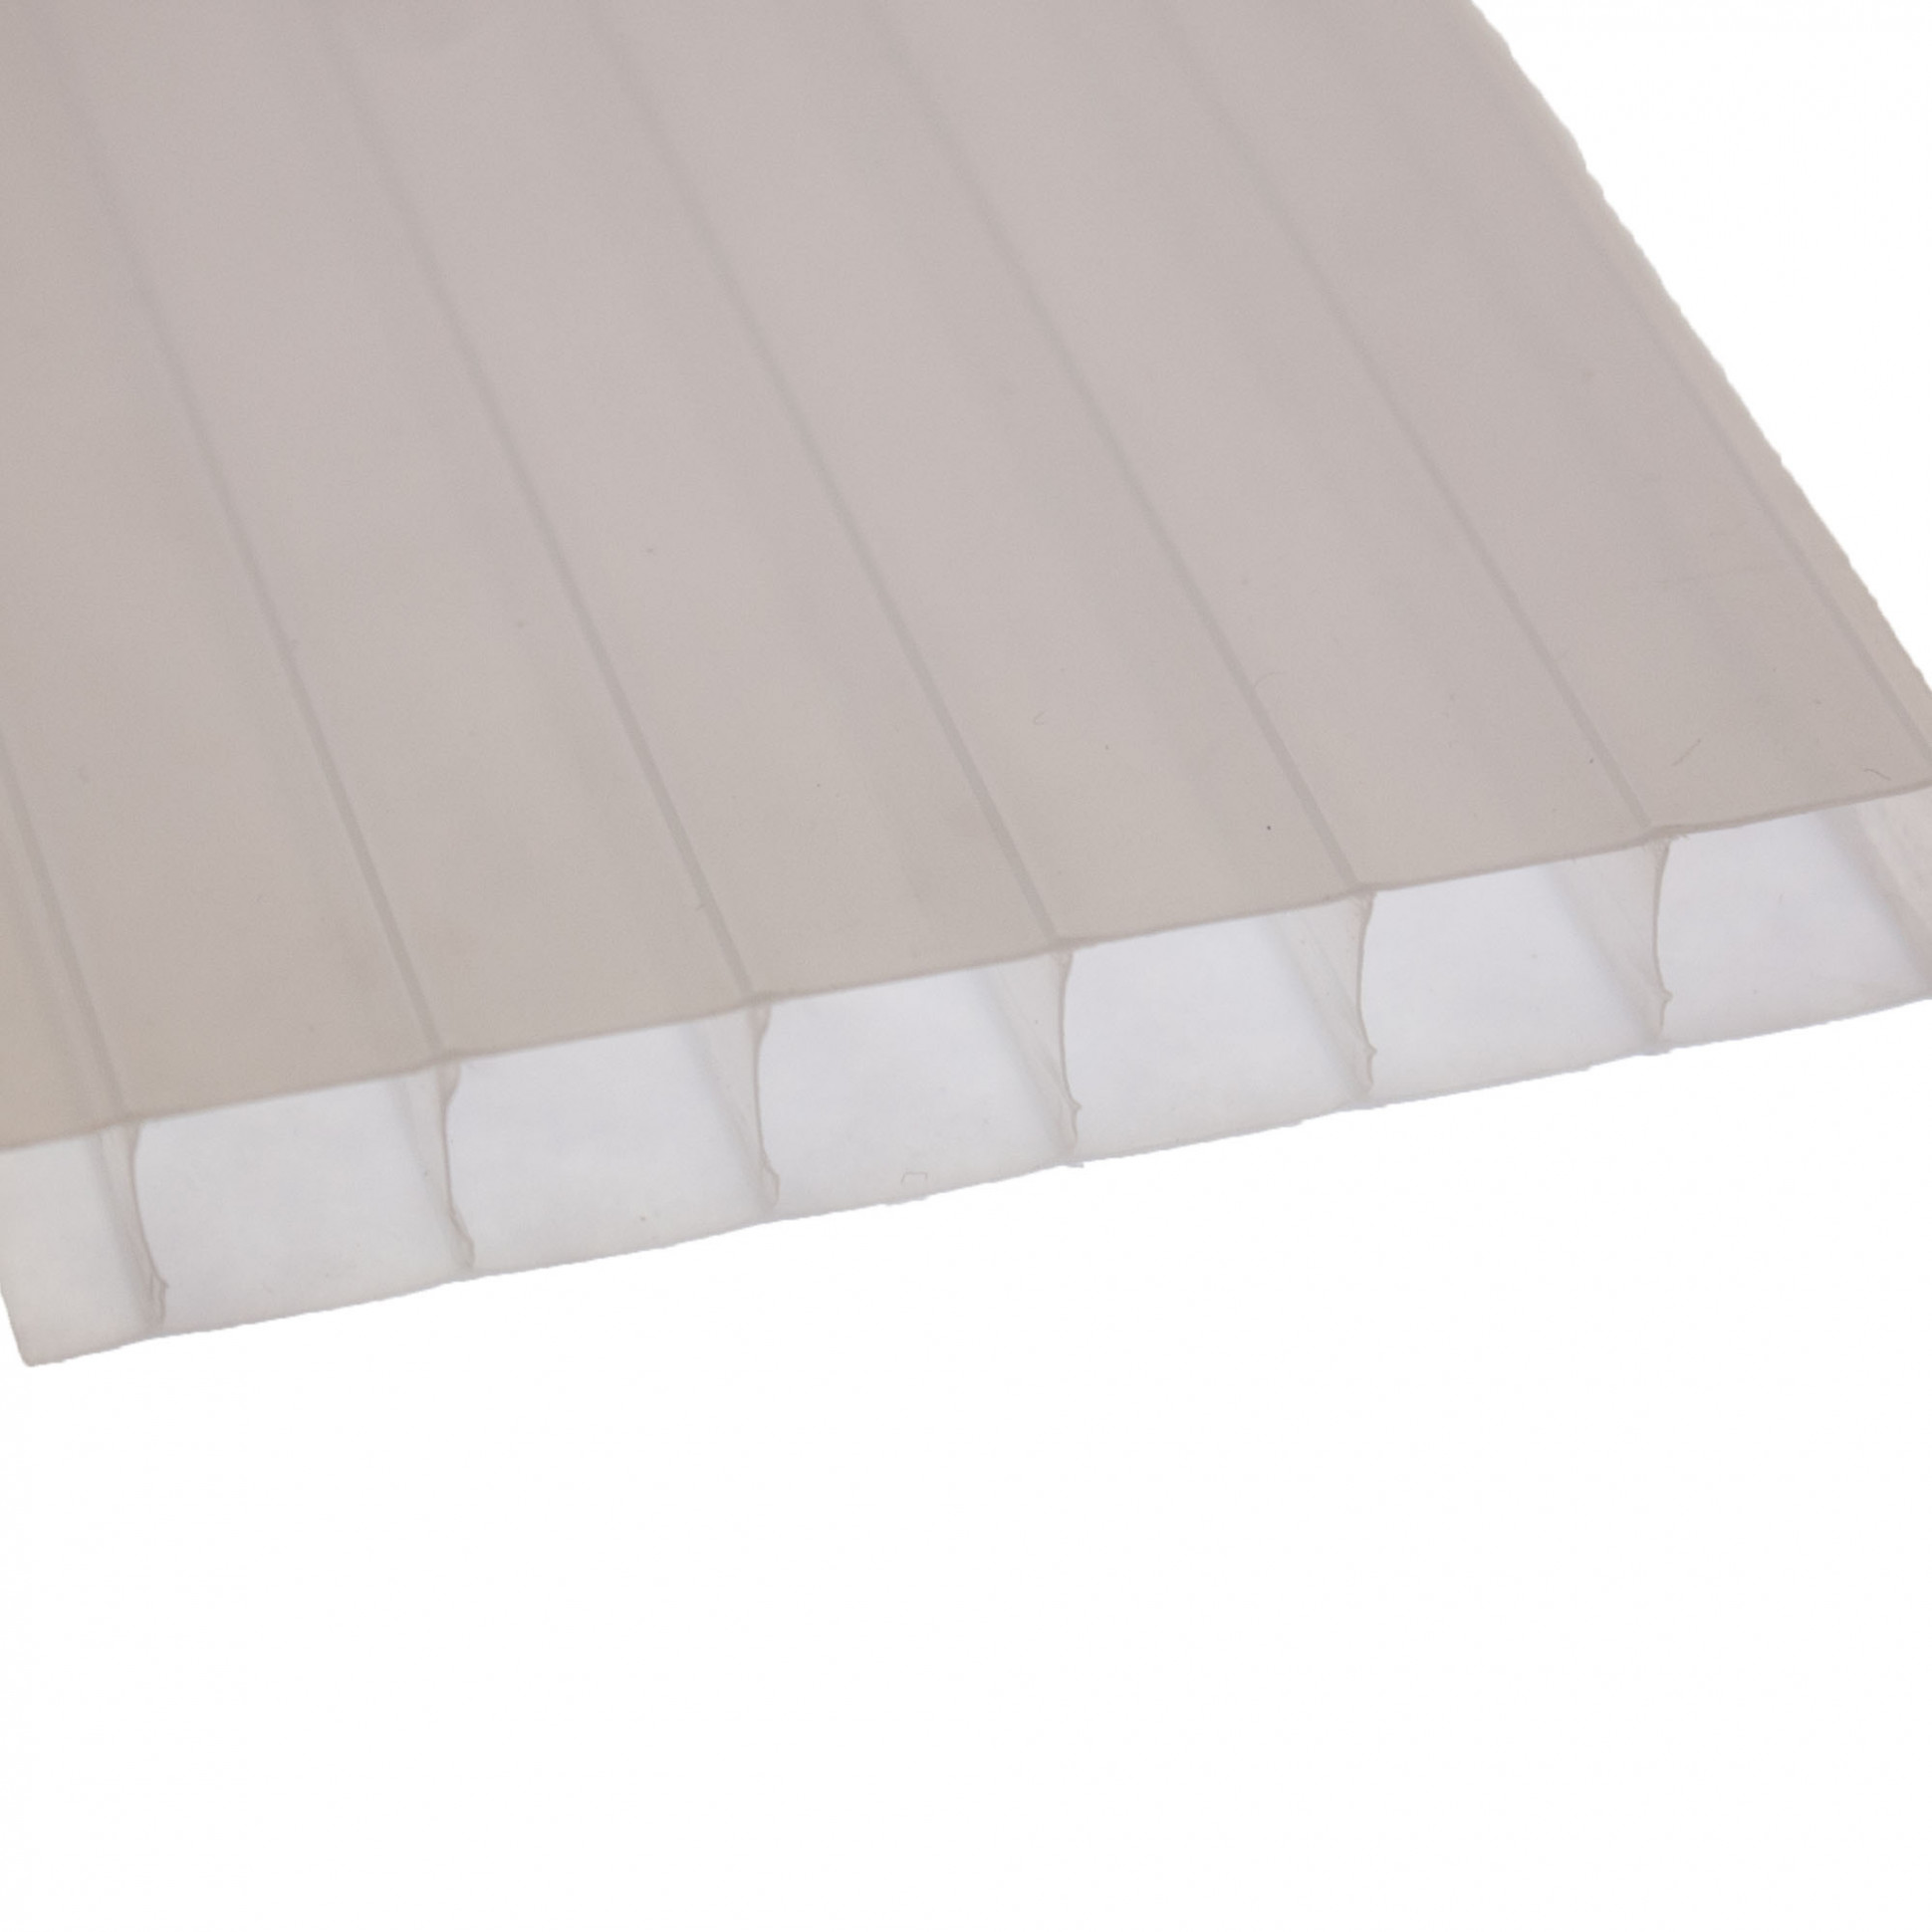 13mm Twinwall Polycarbonate Roofing Sheet Opal Carports Polycarbonate Roof